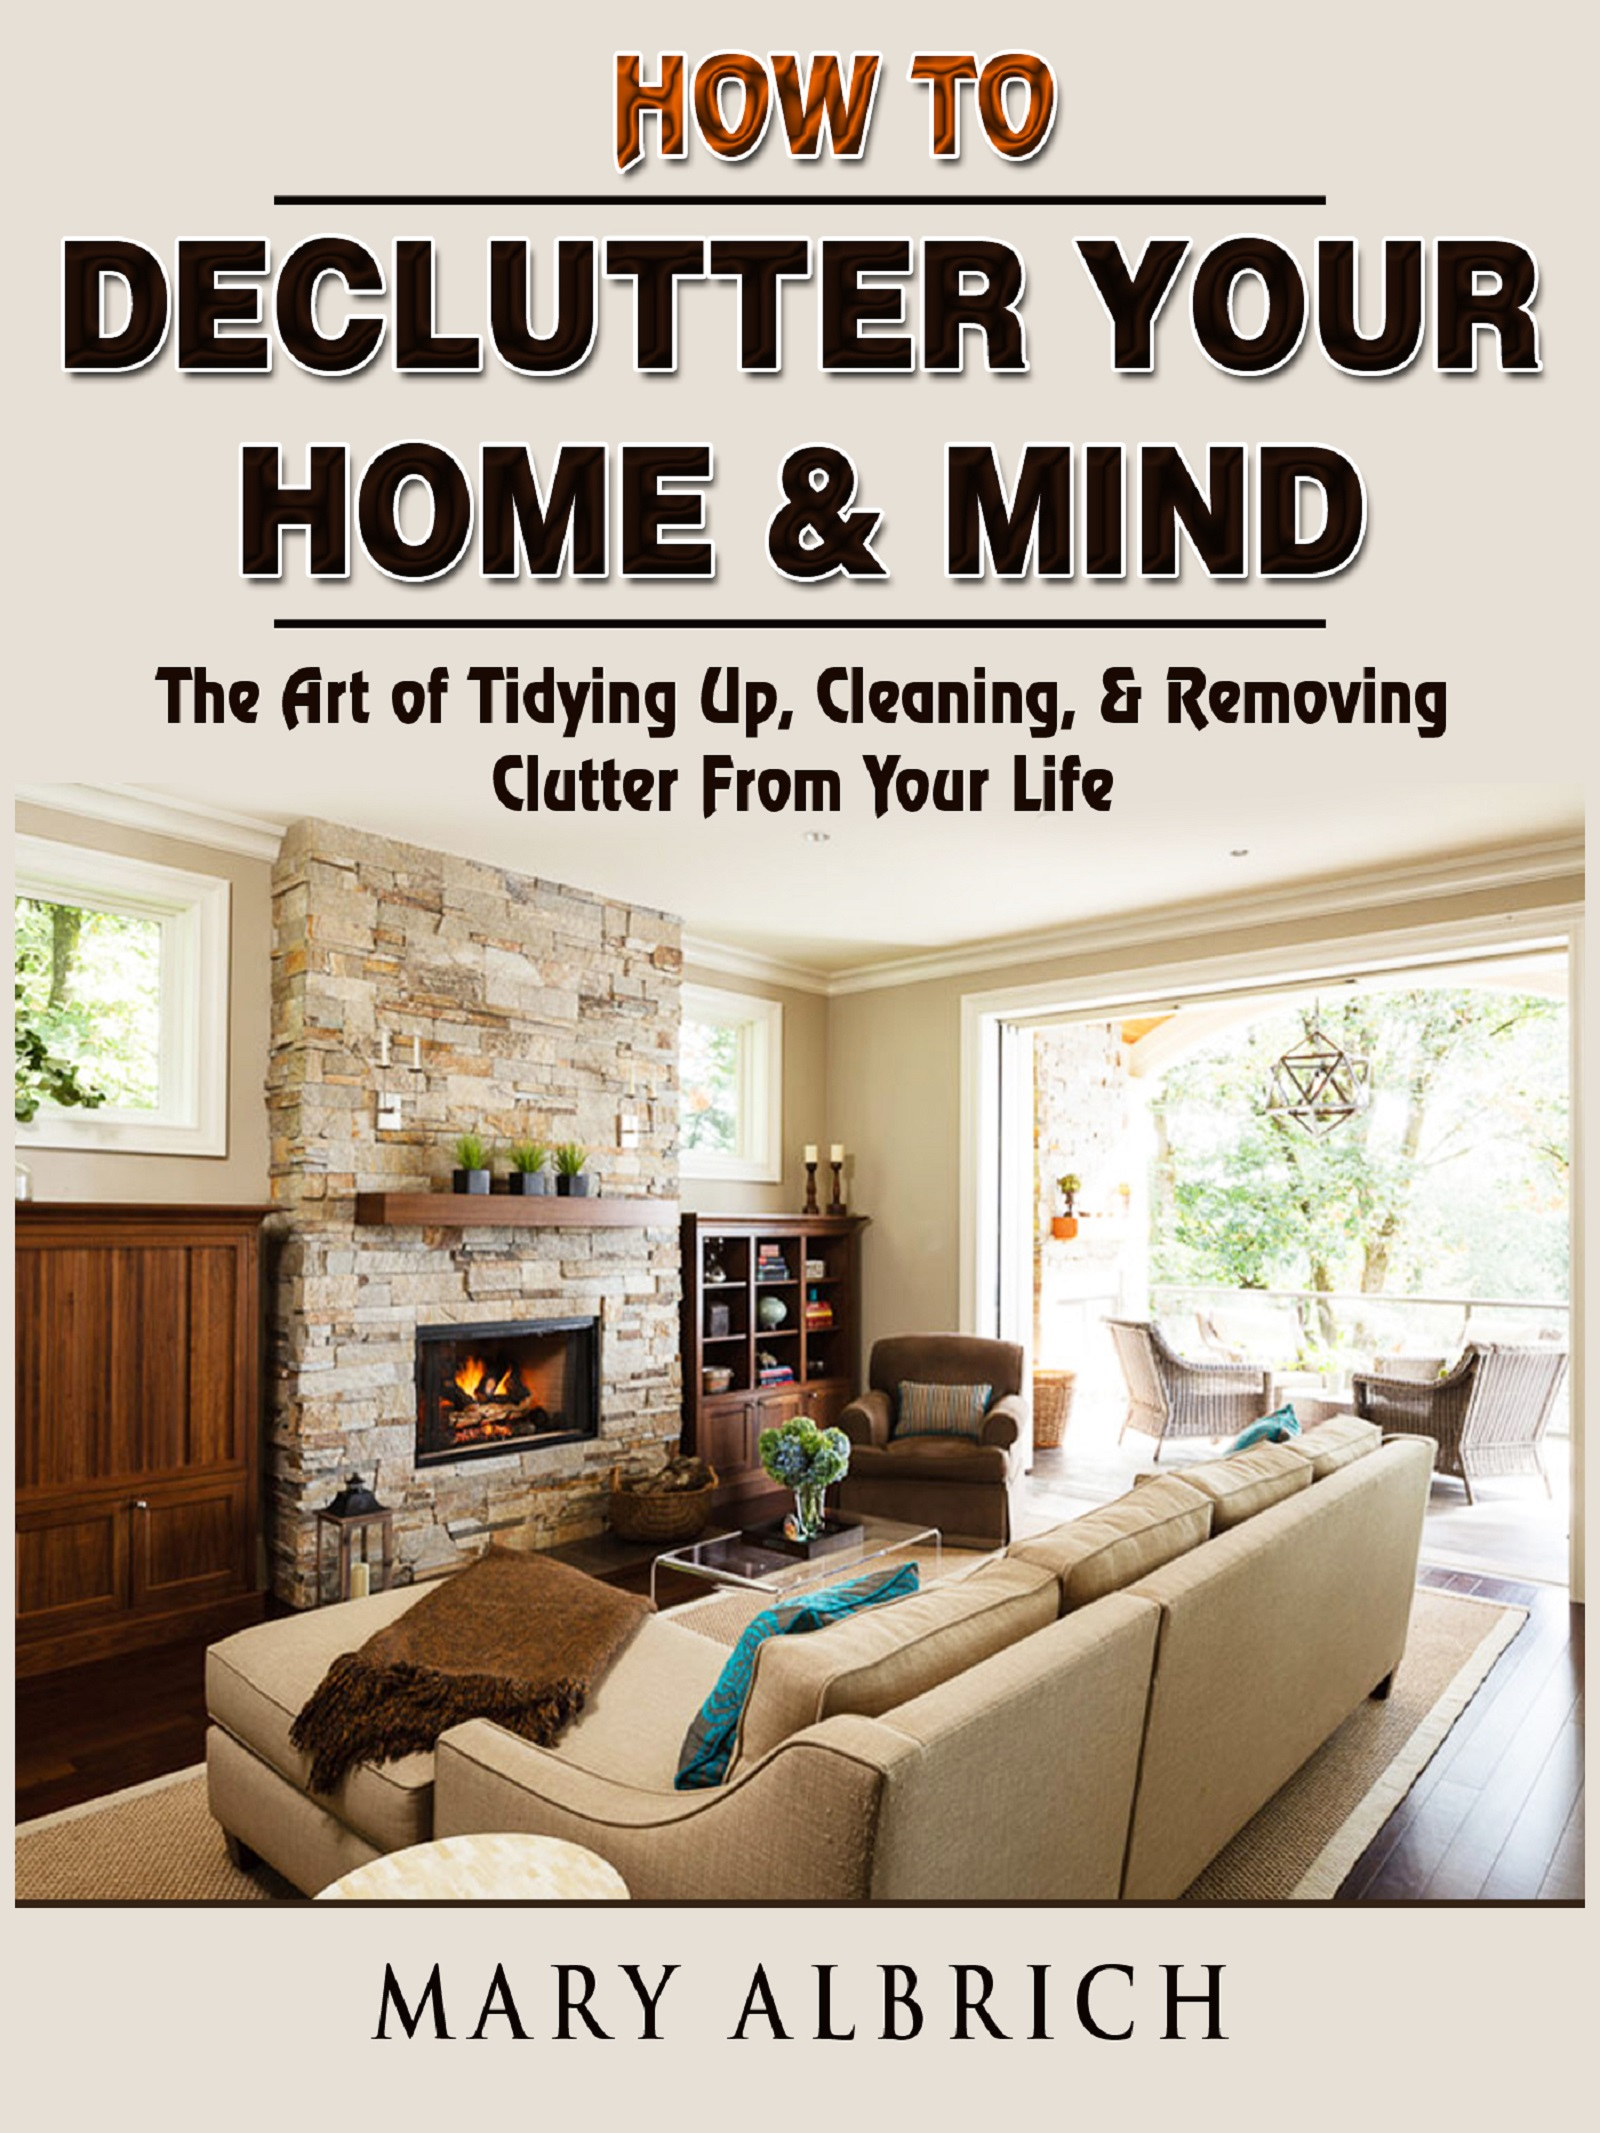 How to declutter your home & mind: the art of tidying up & cleaning